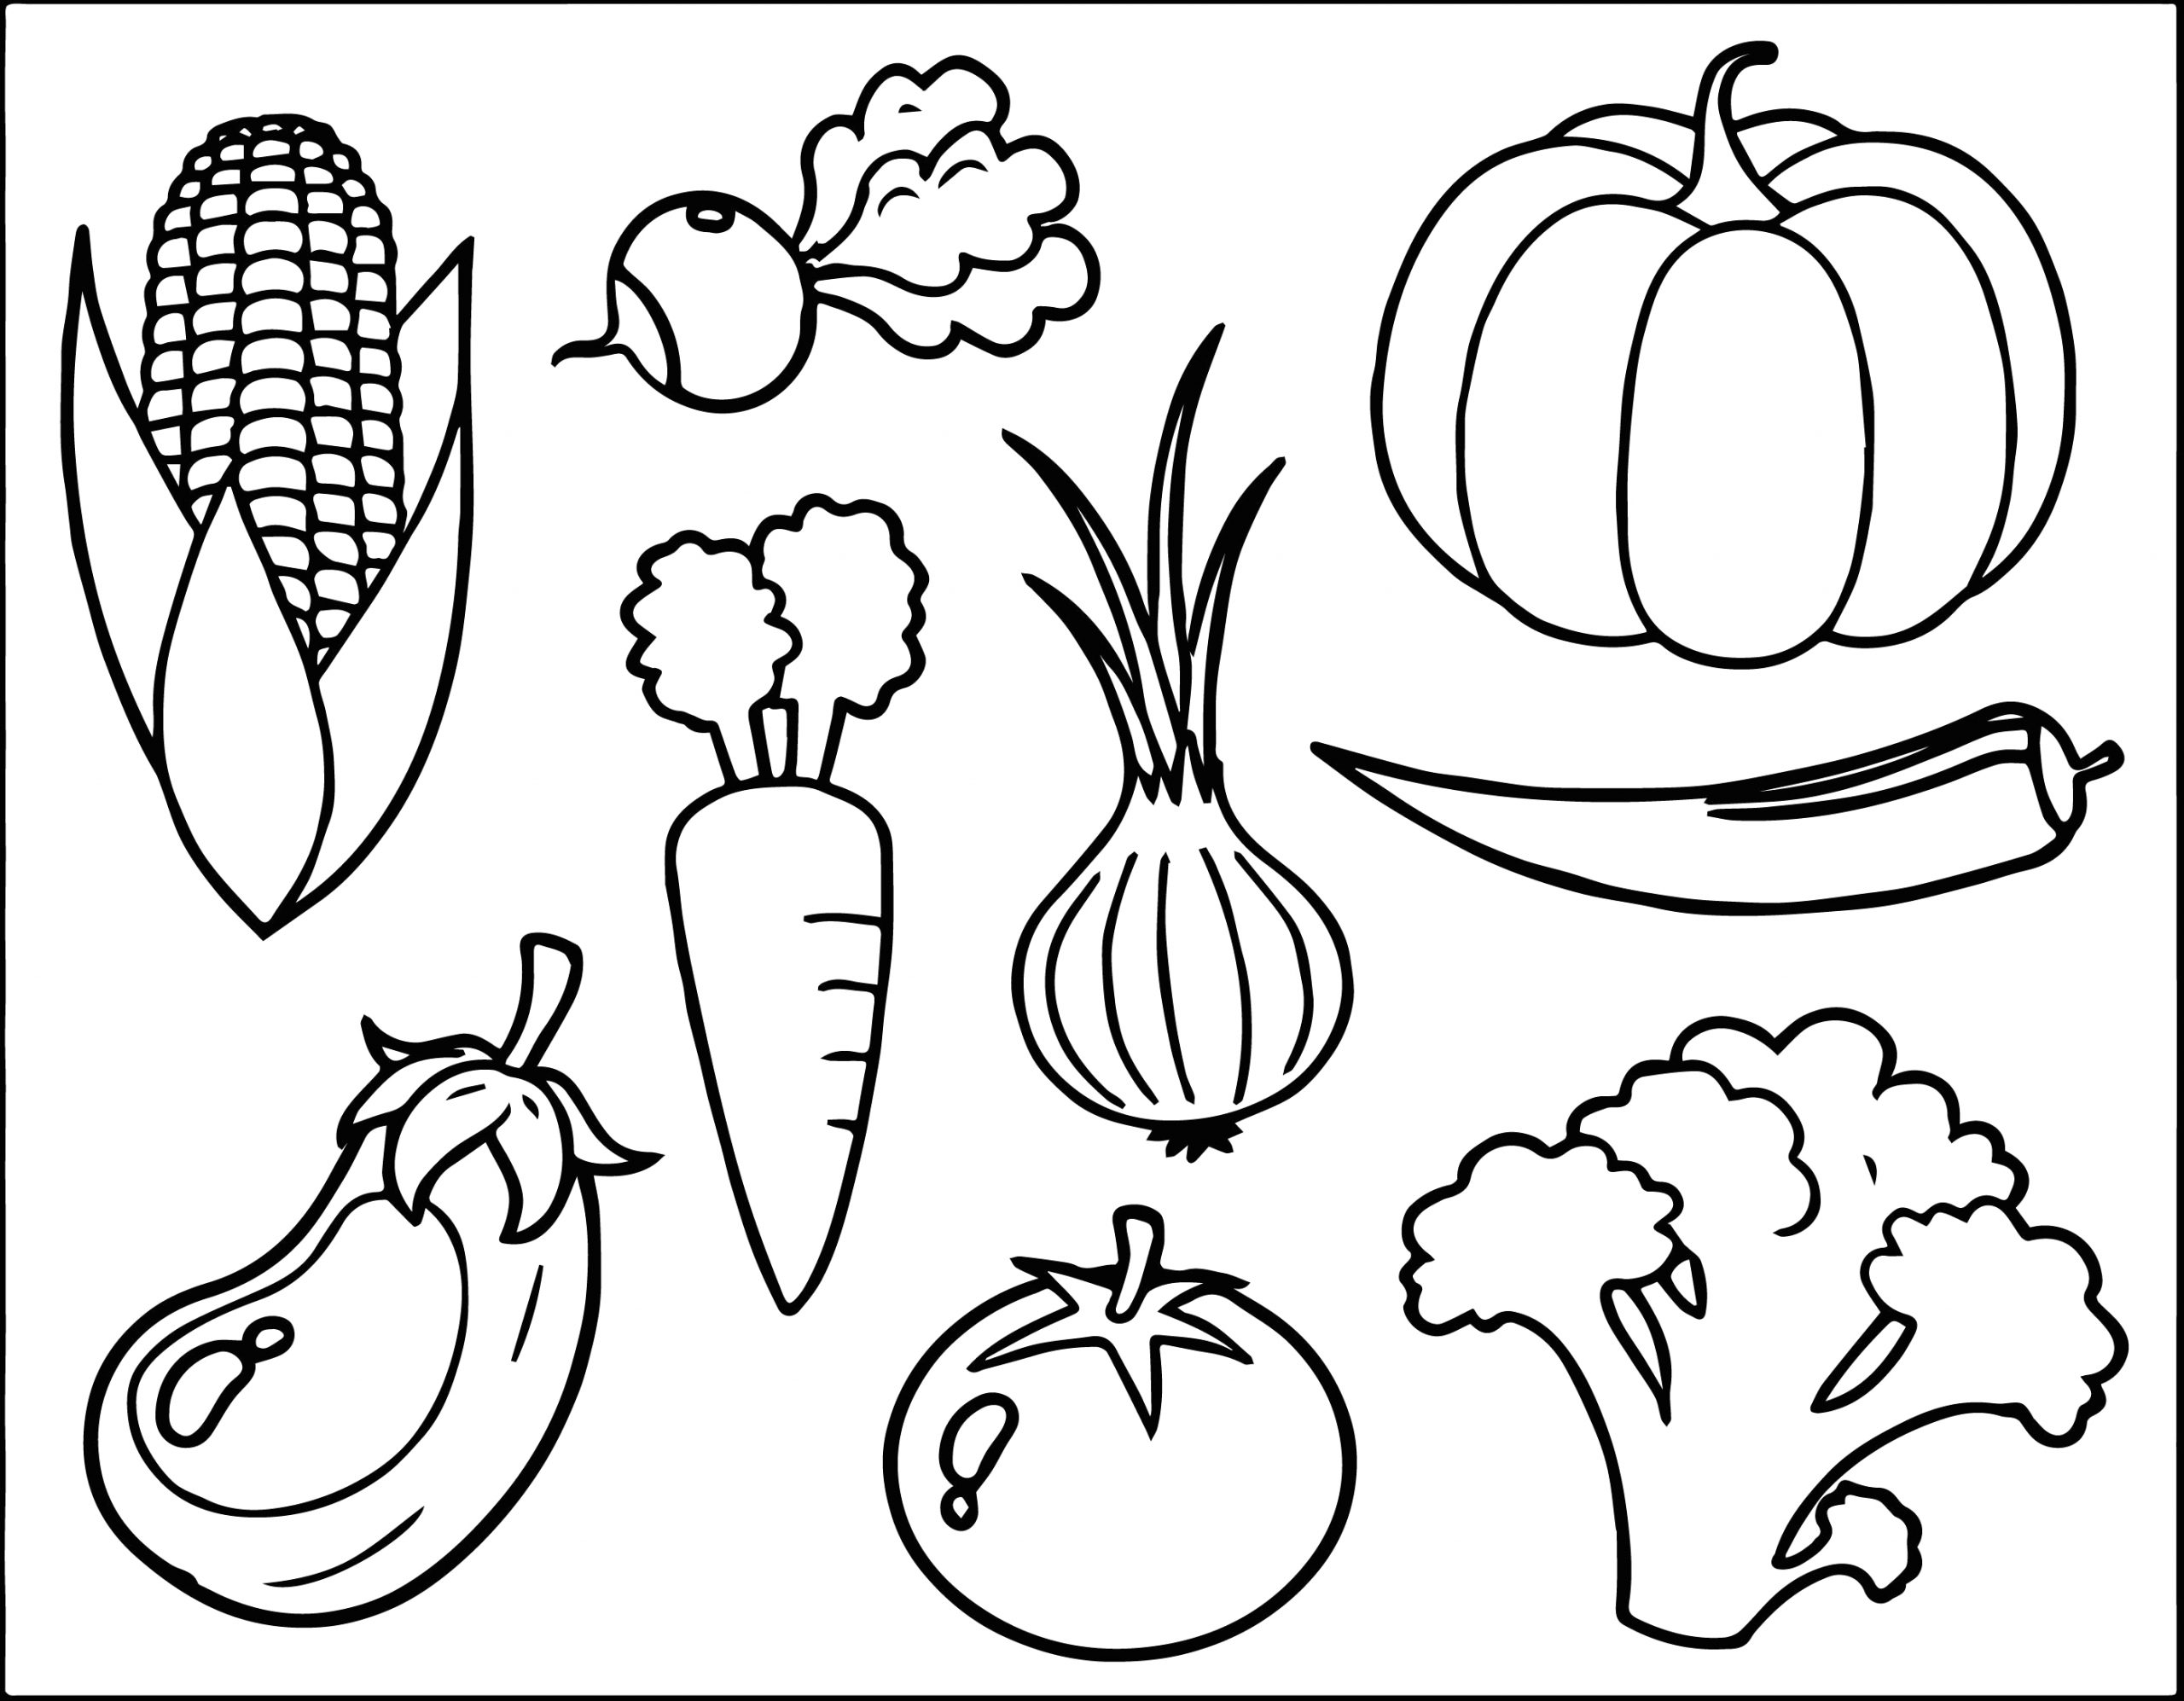 Coloring Page Of A Cornucopia with the Fruit Cornucopia Fruit Coloring Pages at Getcolorings